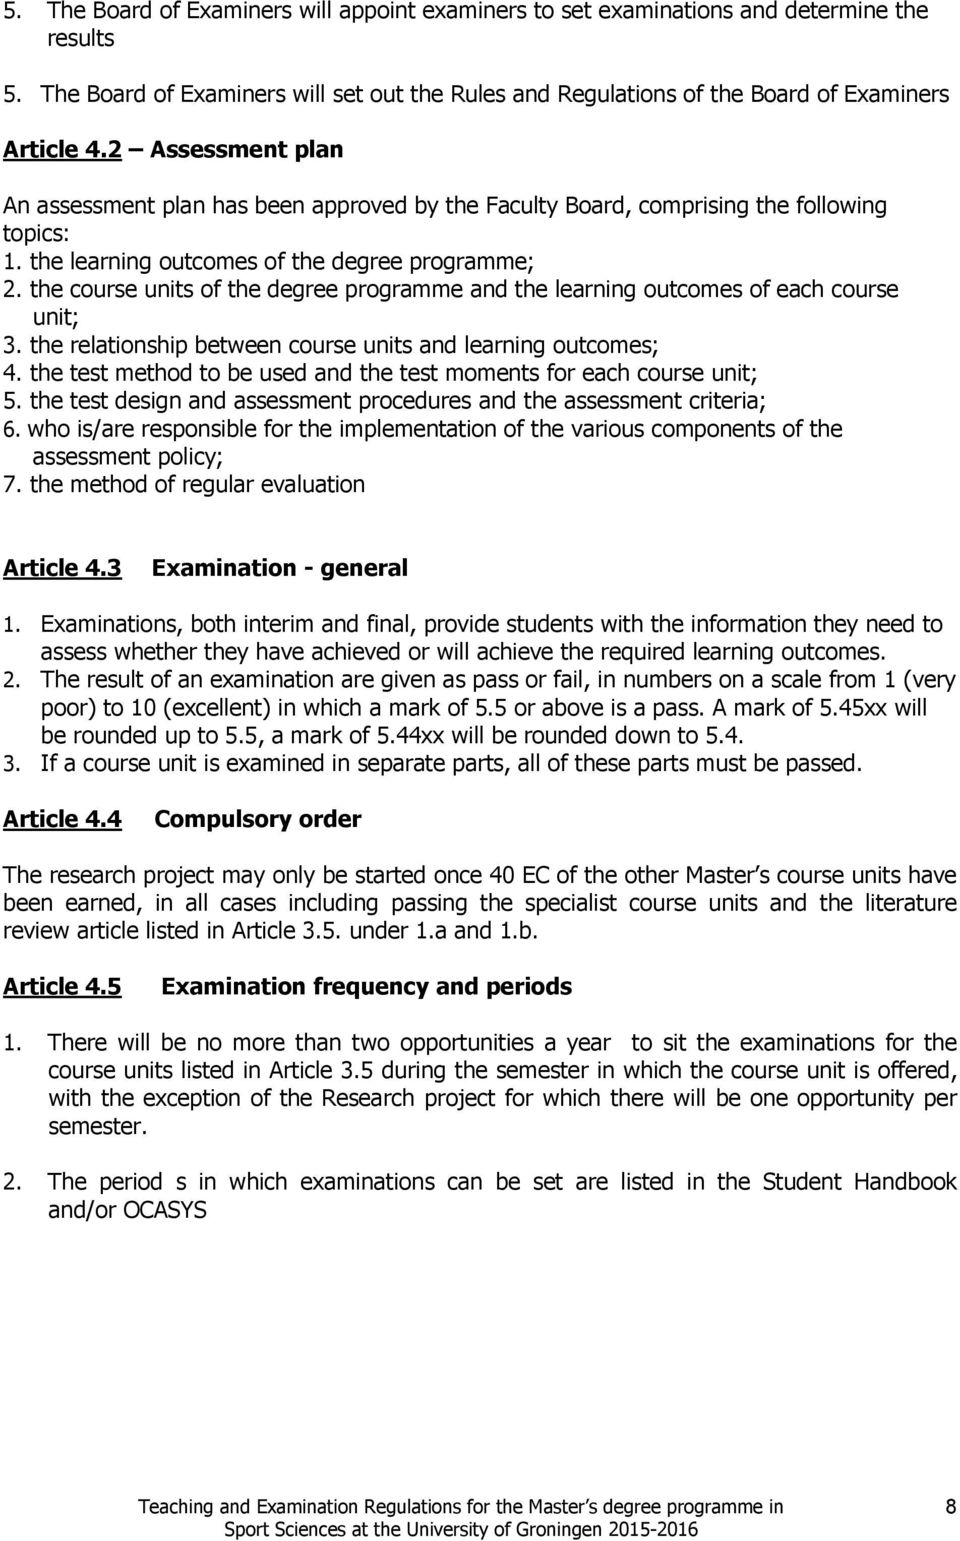 the course units of the degree programme and the learning outcomes of each course unit; 3. the relationship between course units and learning outcomes; 4.